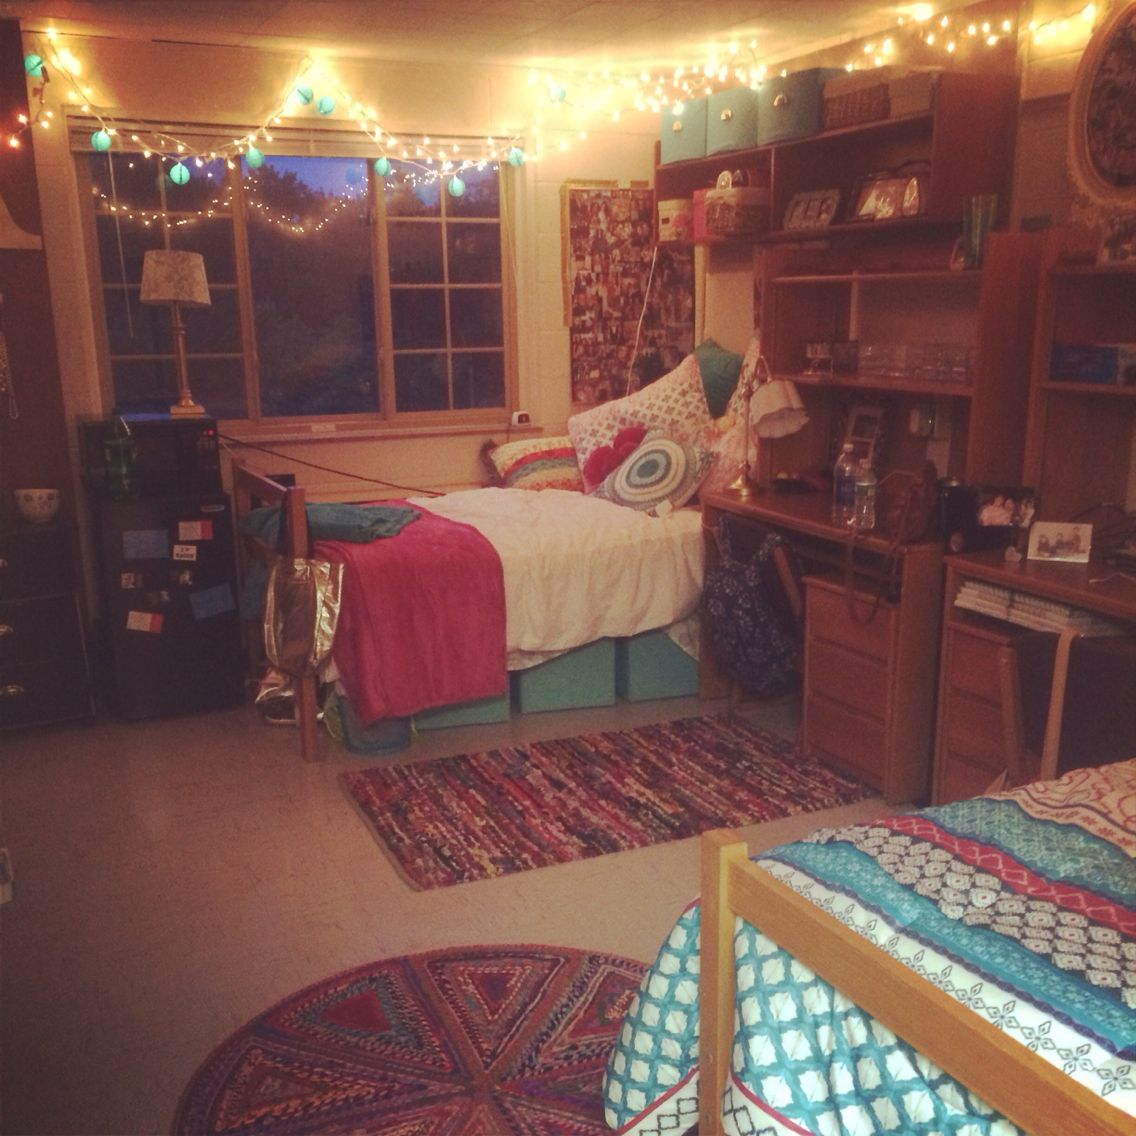 my dorm room Diy 26 cheap and easy ways to have the best dorm room ever cinderblock walls, fluorescent lights, and plastic mattresses be damned.